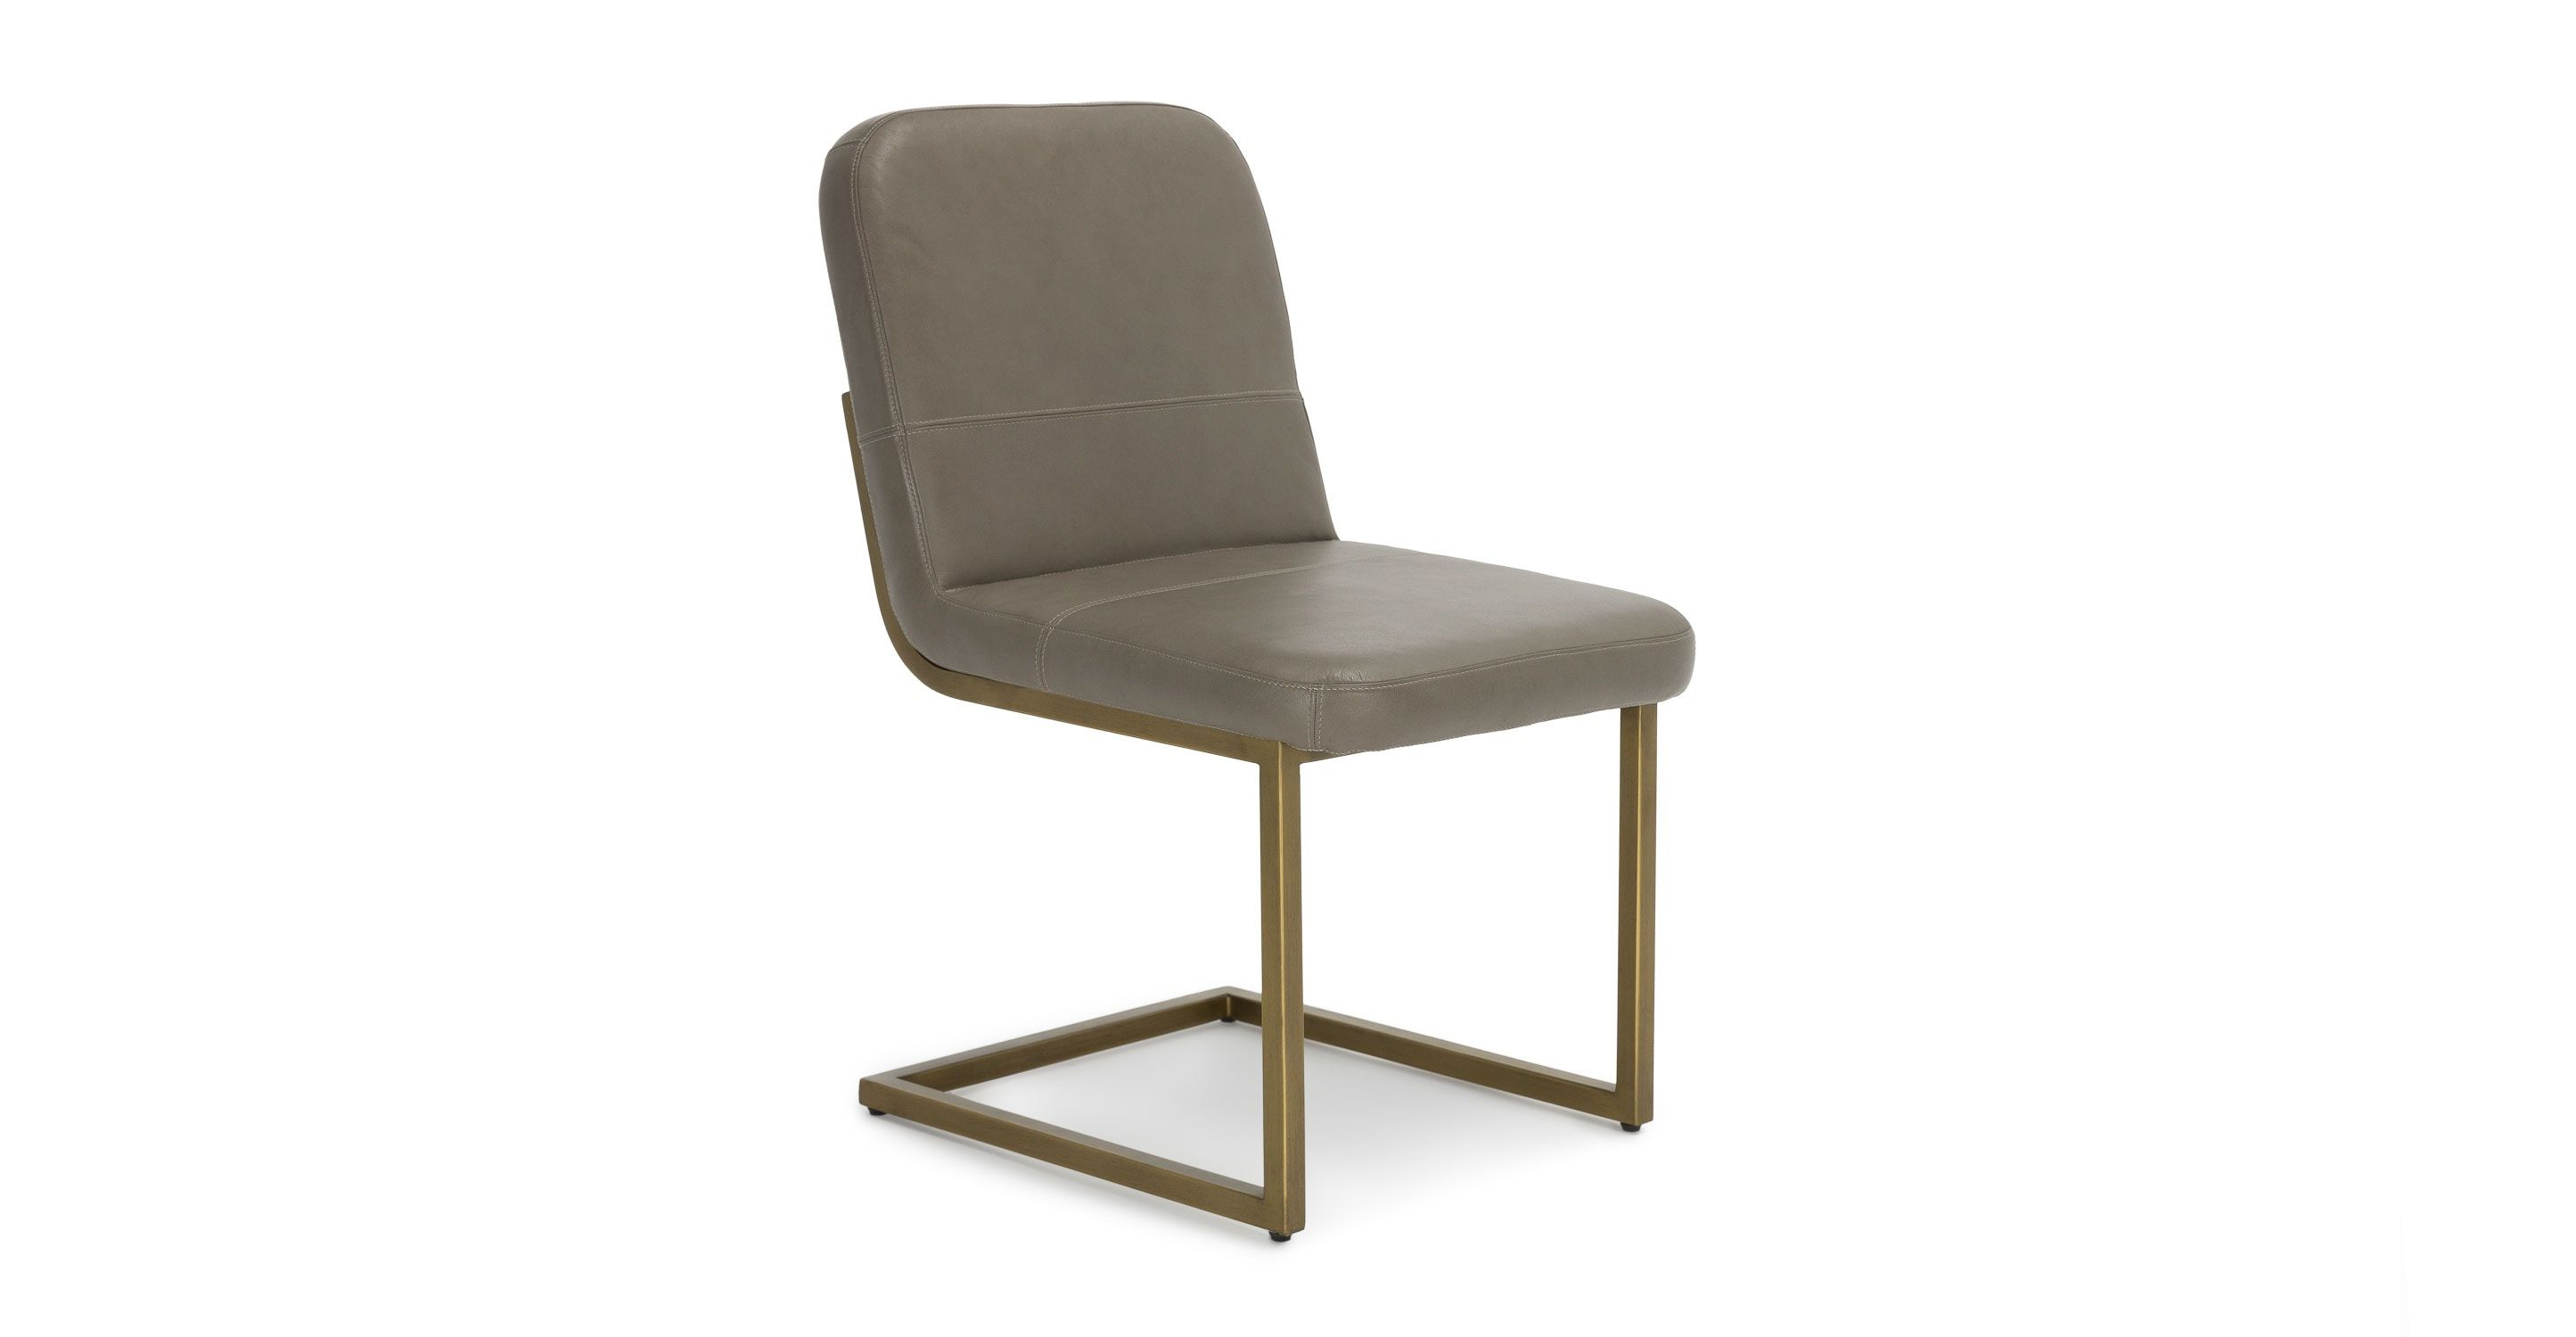 metal frame leather dining chair maker jim steel gray gold article alchemy modern furniture